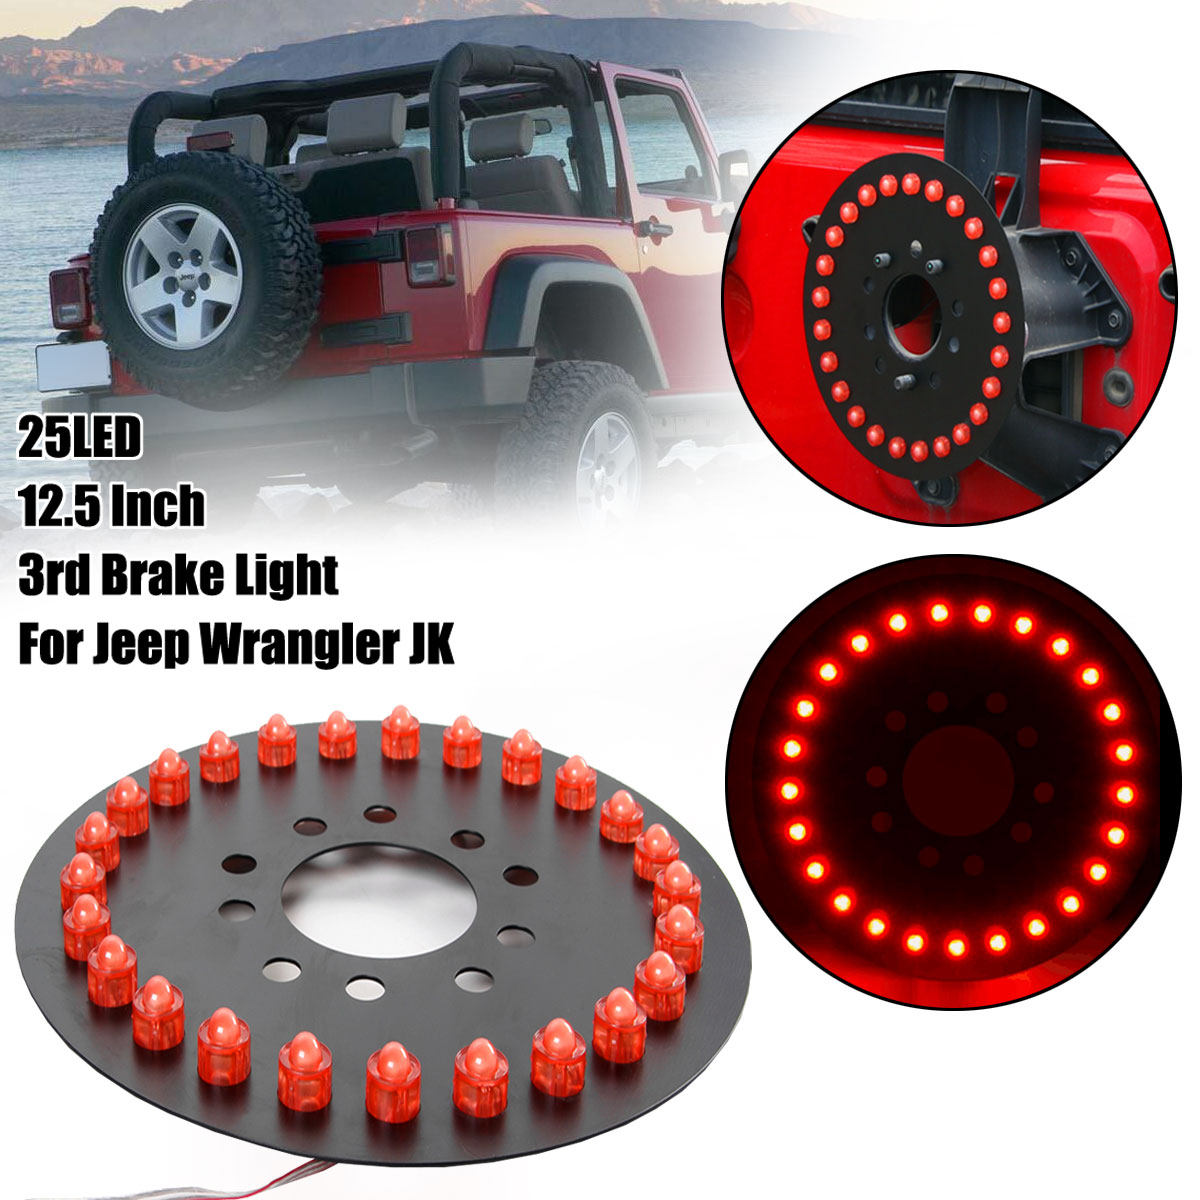 hight resolution of 1 pc waterproof car spare tire led lamp rear 3rd brake decor light for jeep wrangler jk accessories walmart com